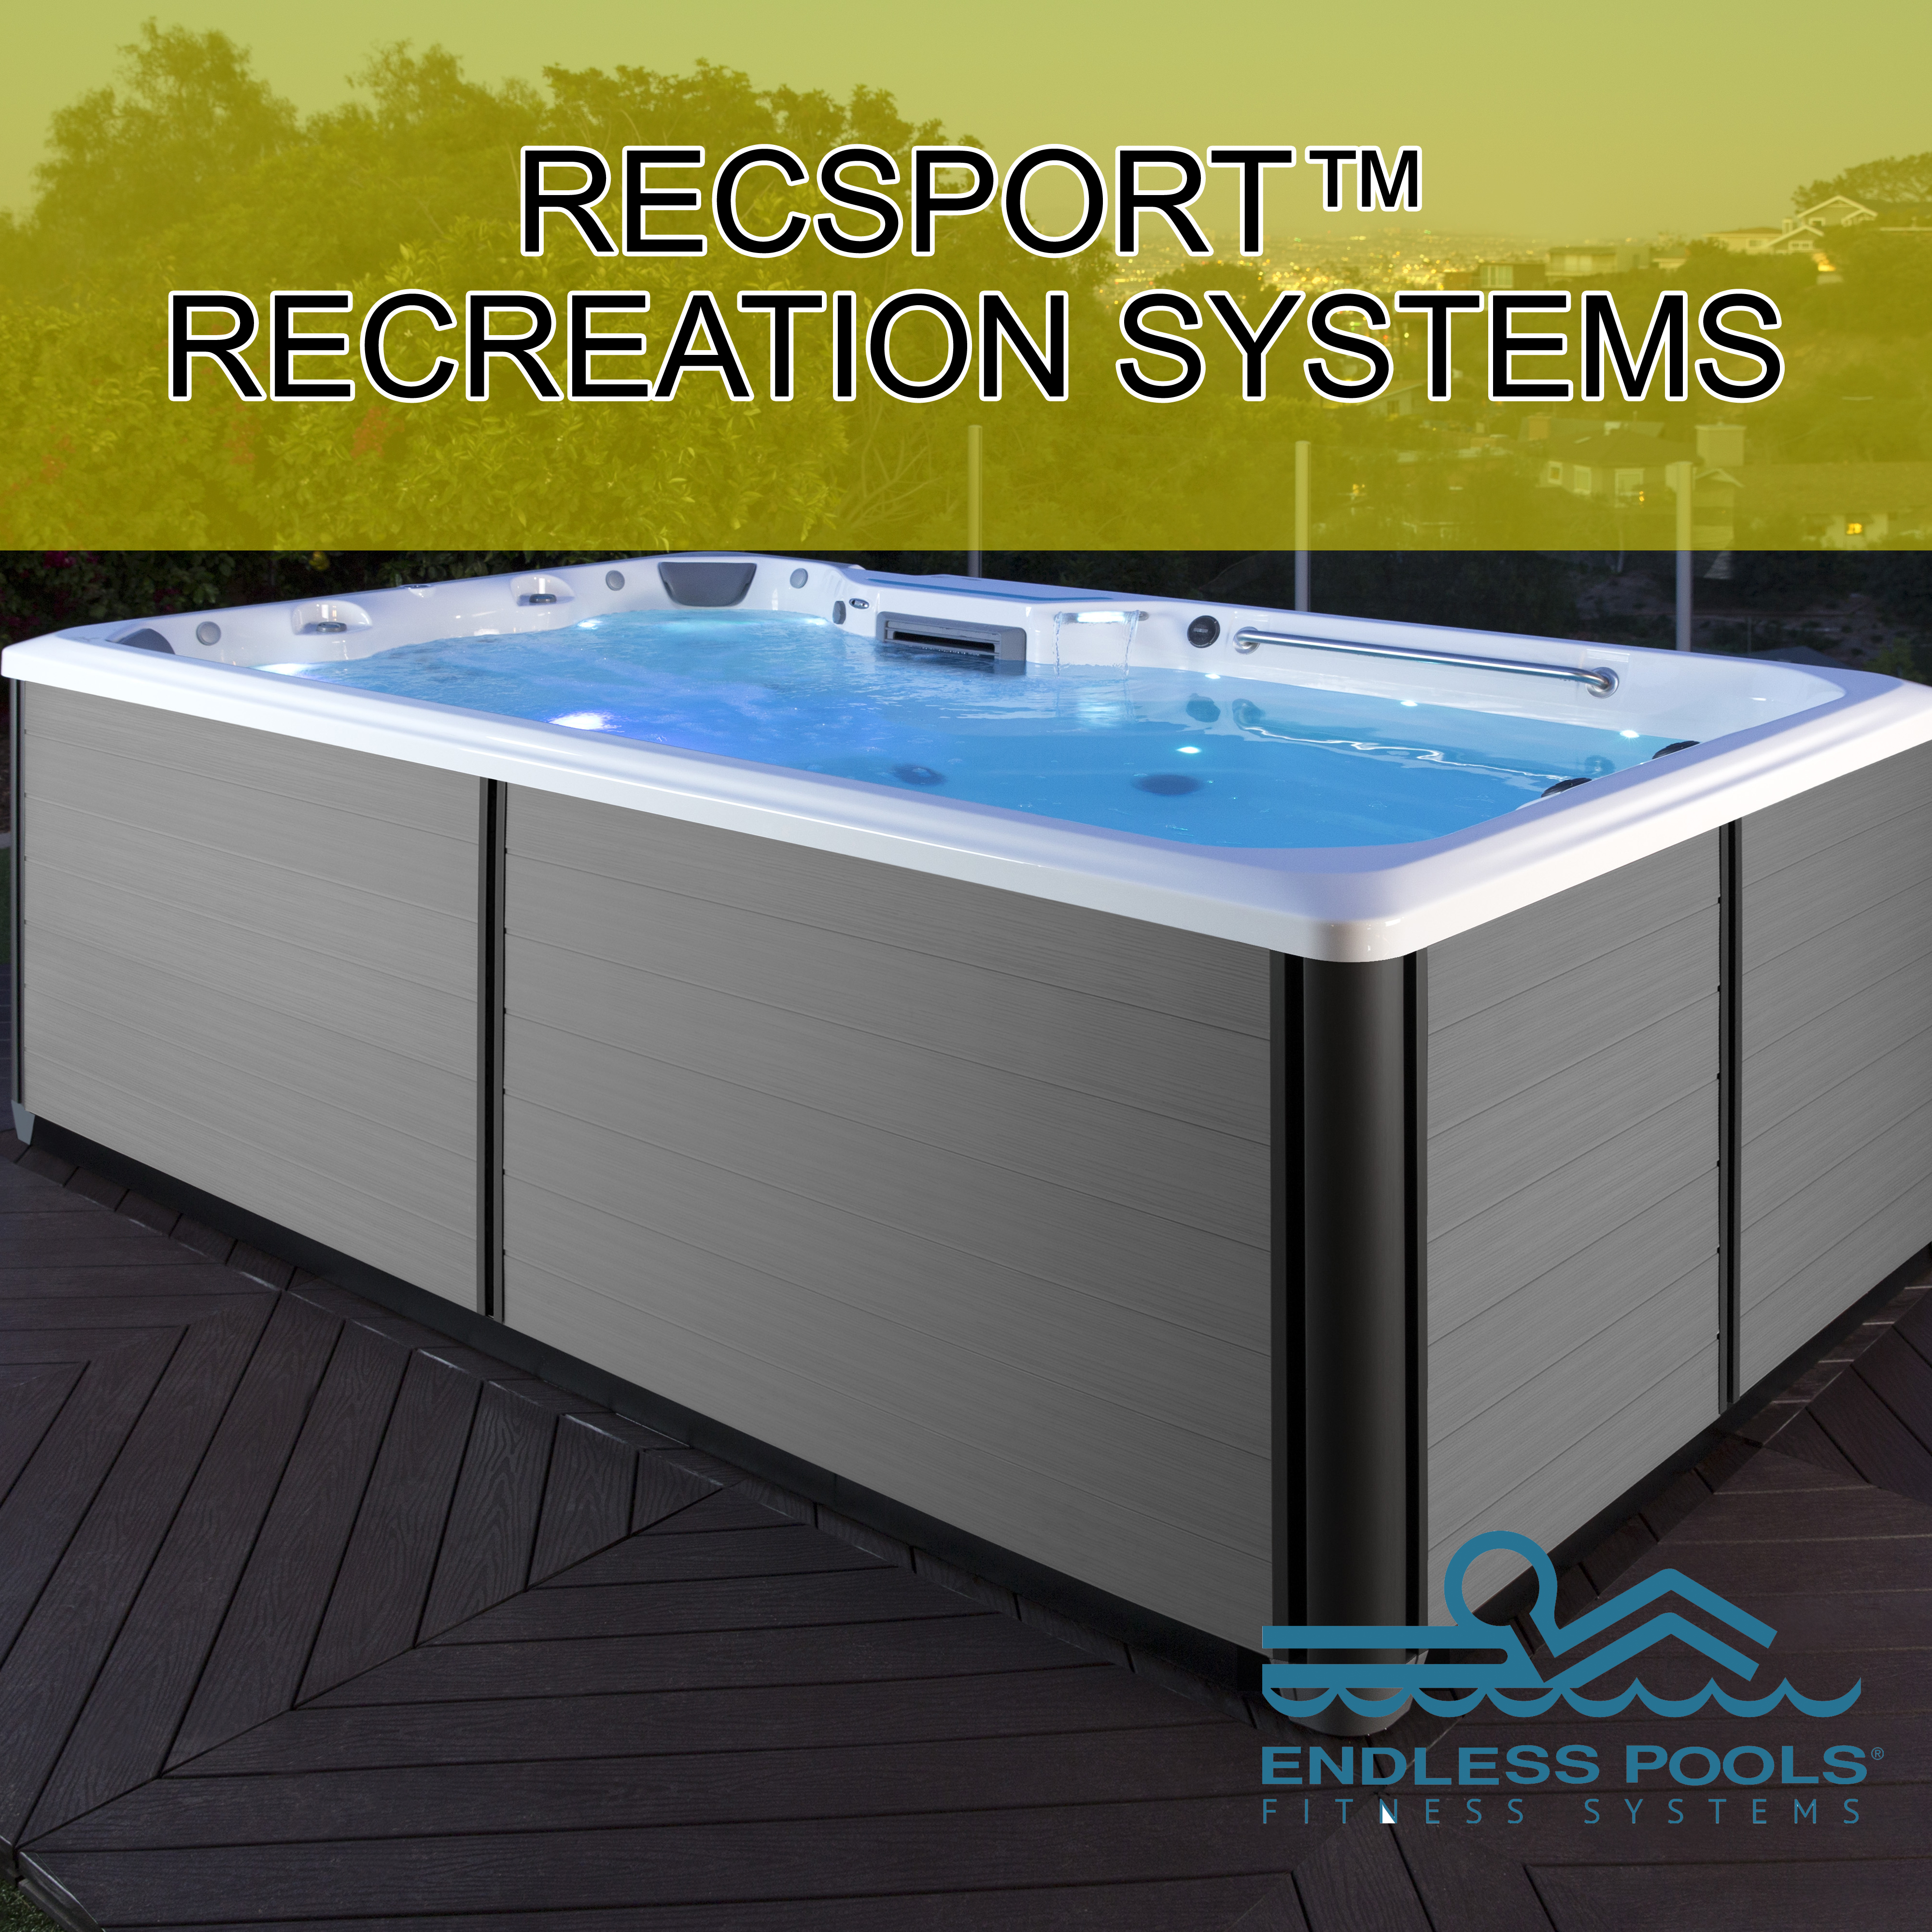 Recsport Endless pool